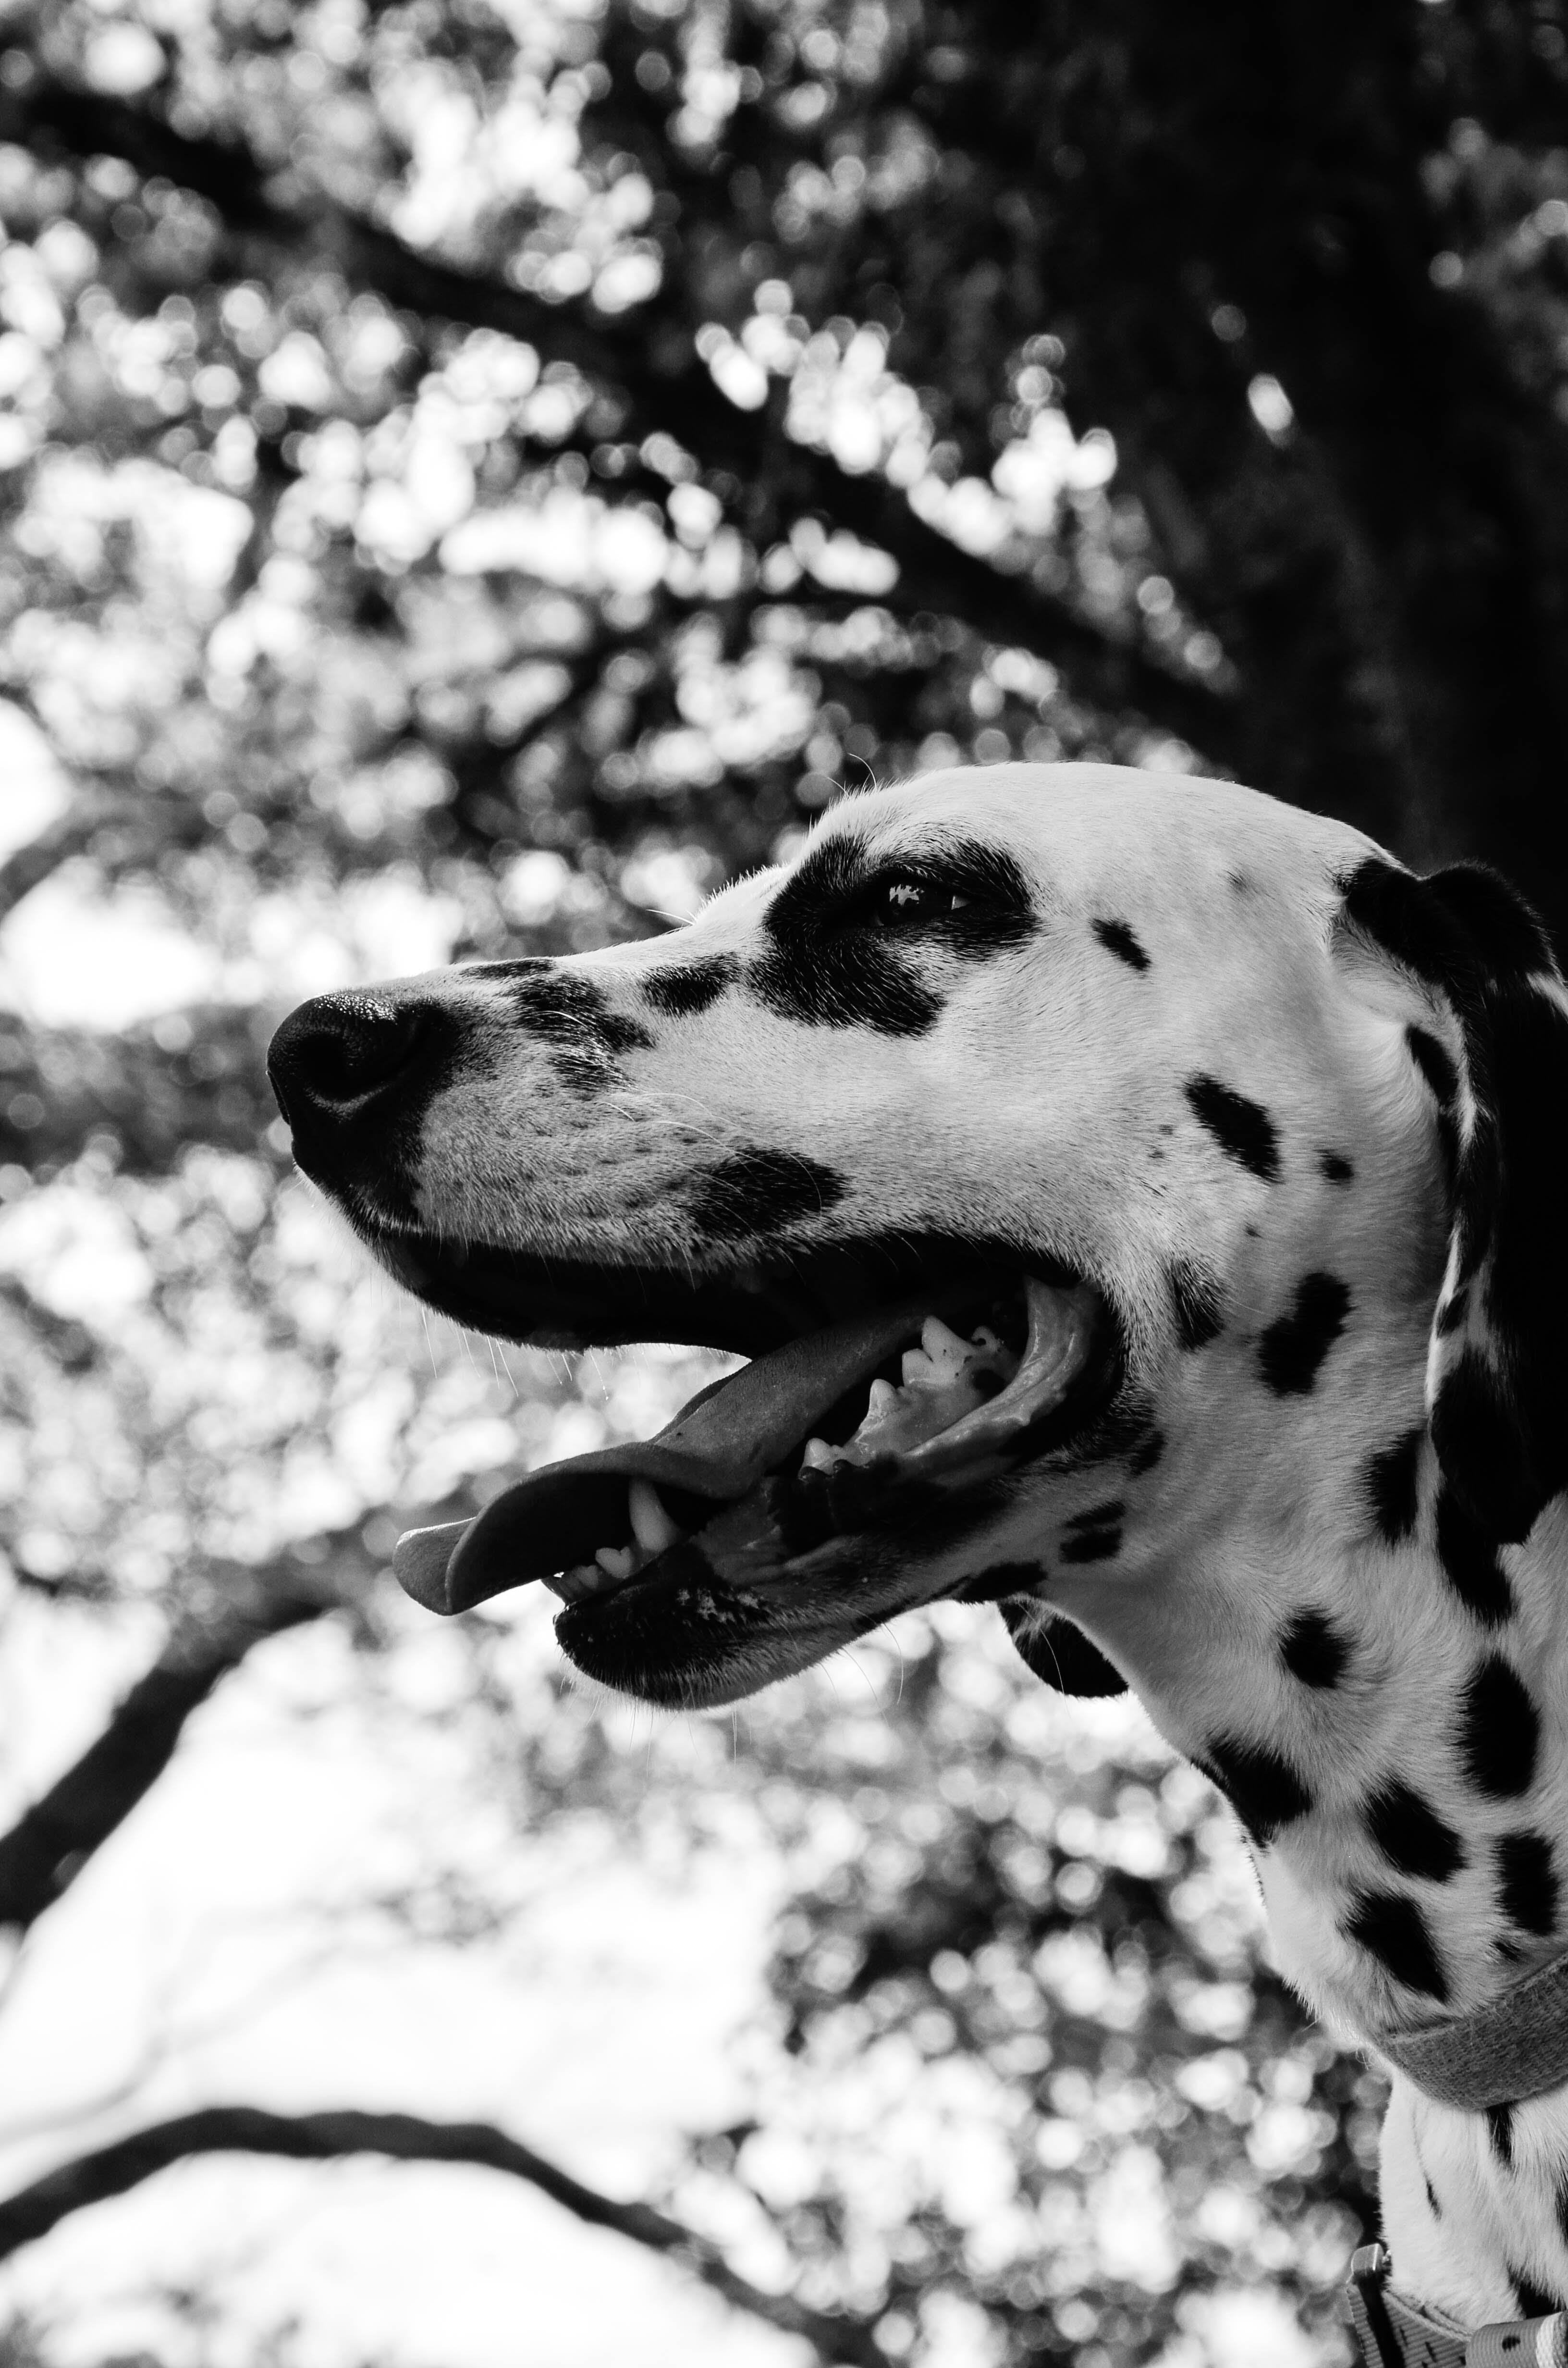 White and Black Dalmation